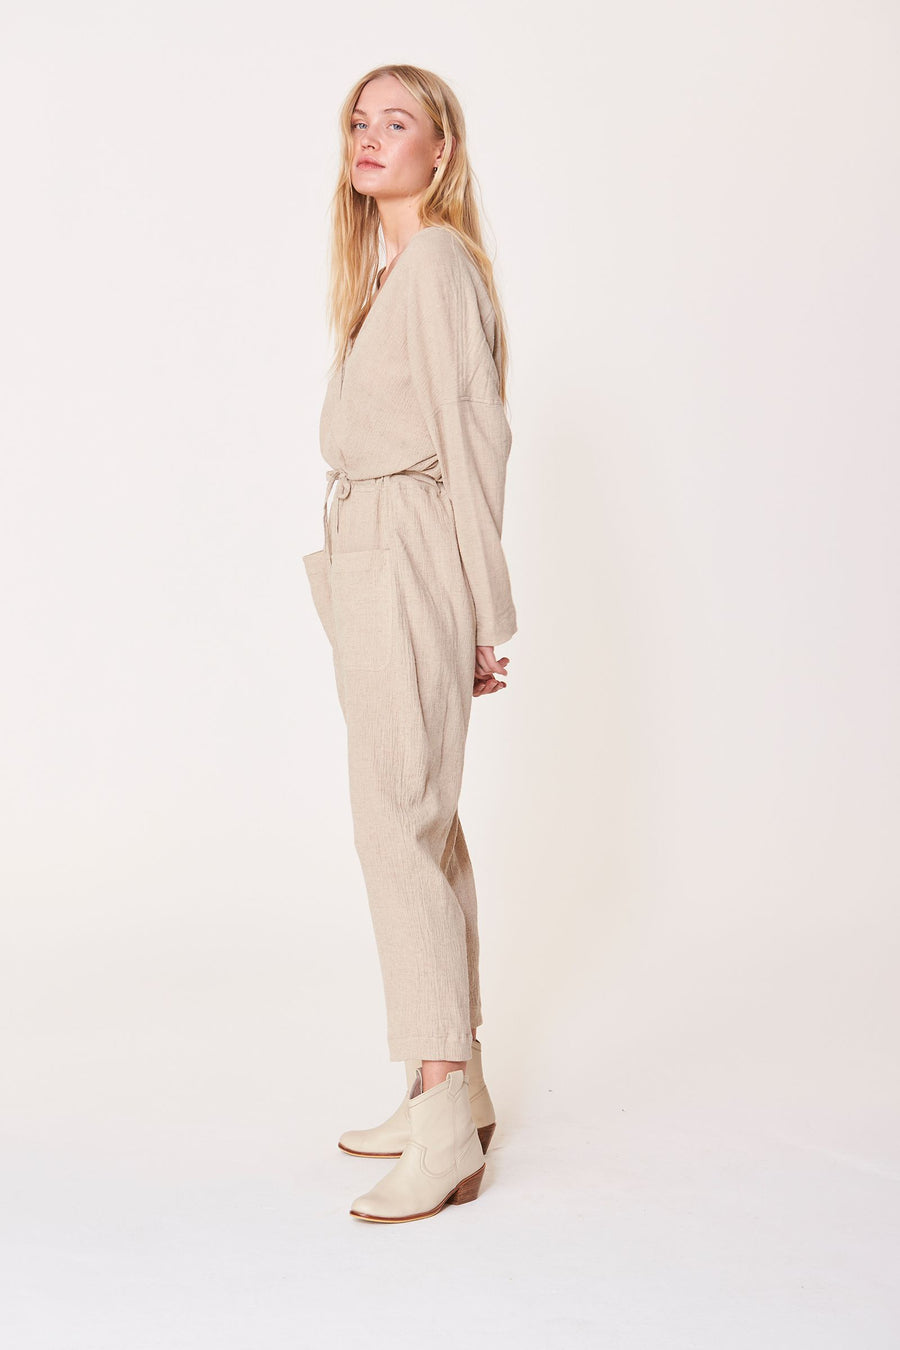 ROWIE THE LABEL - RAPHY JUMPSUIT DUNE